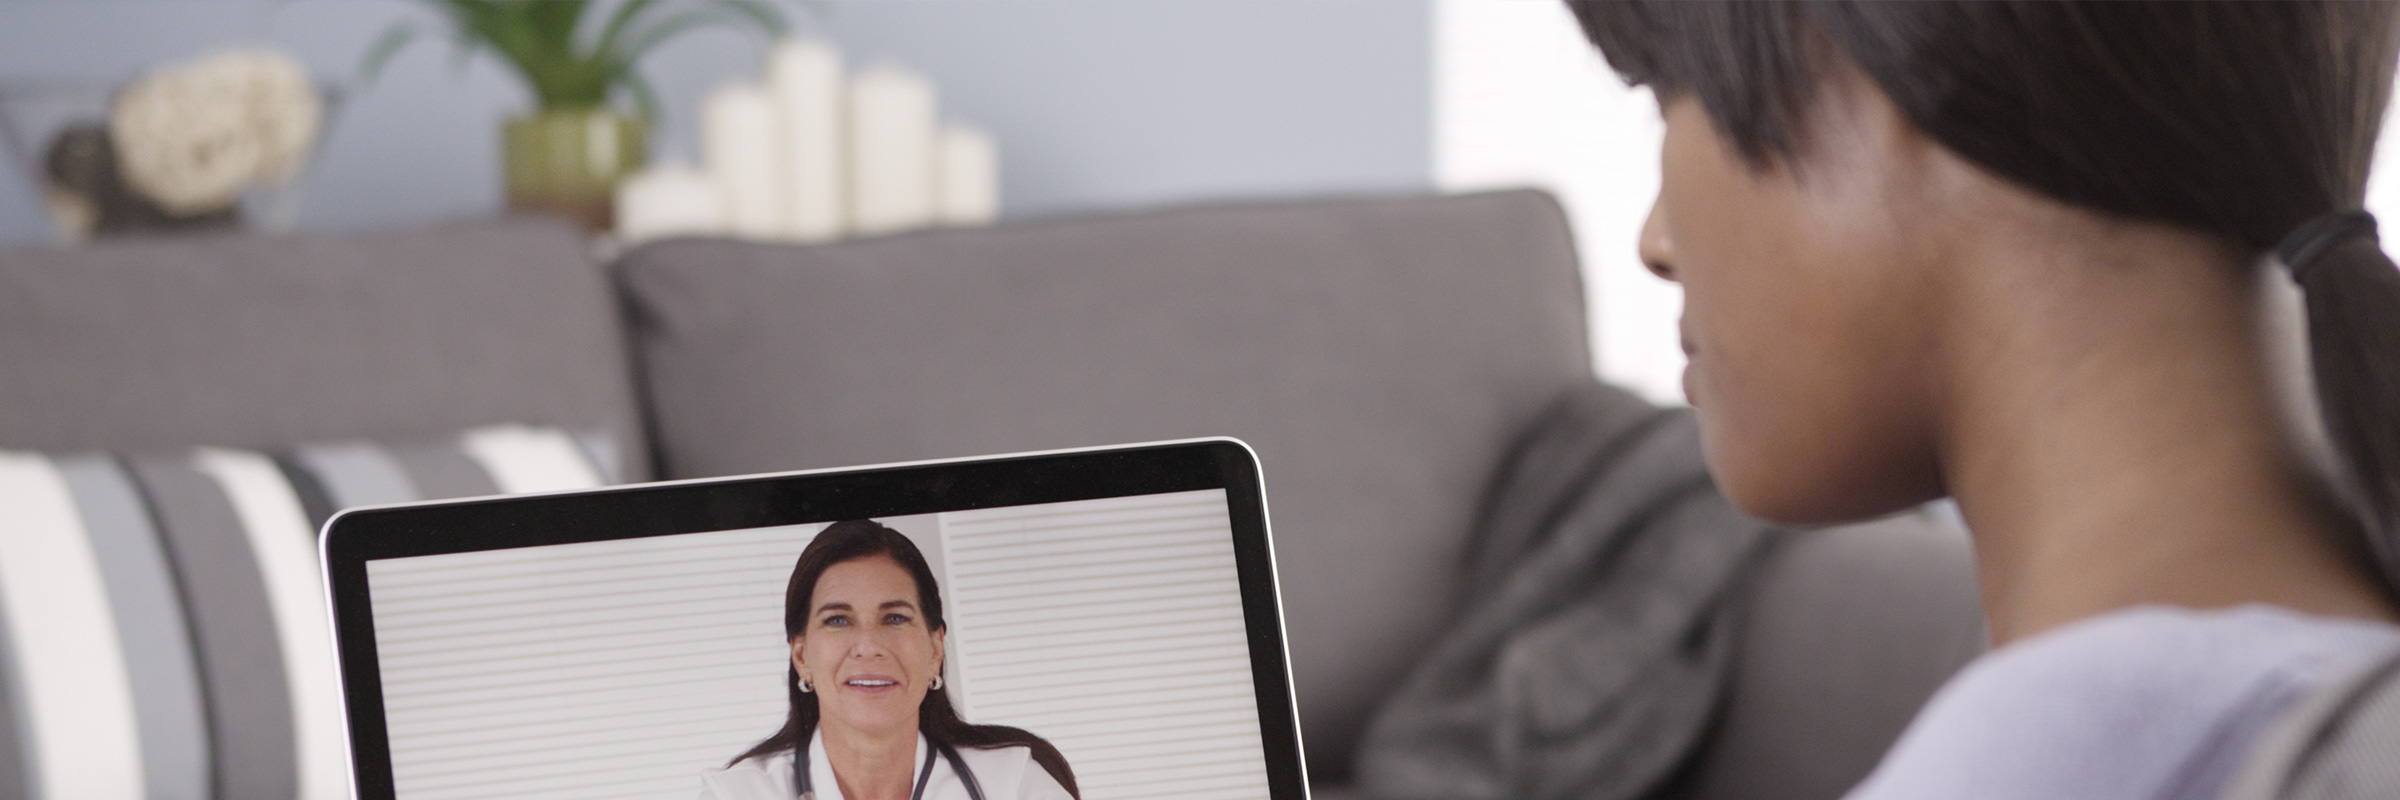 woman consulting with virtual doctor